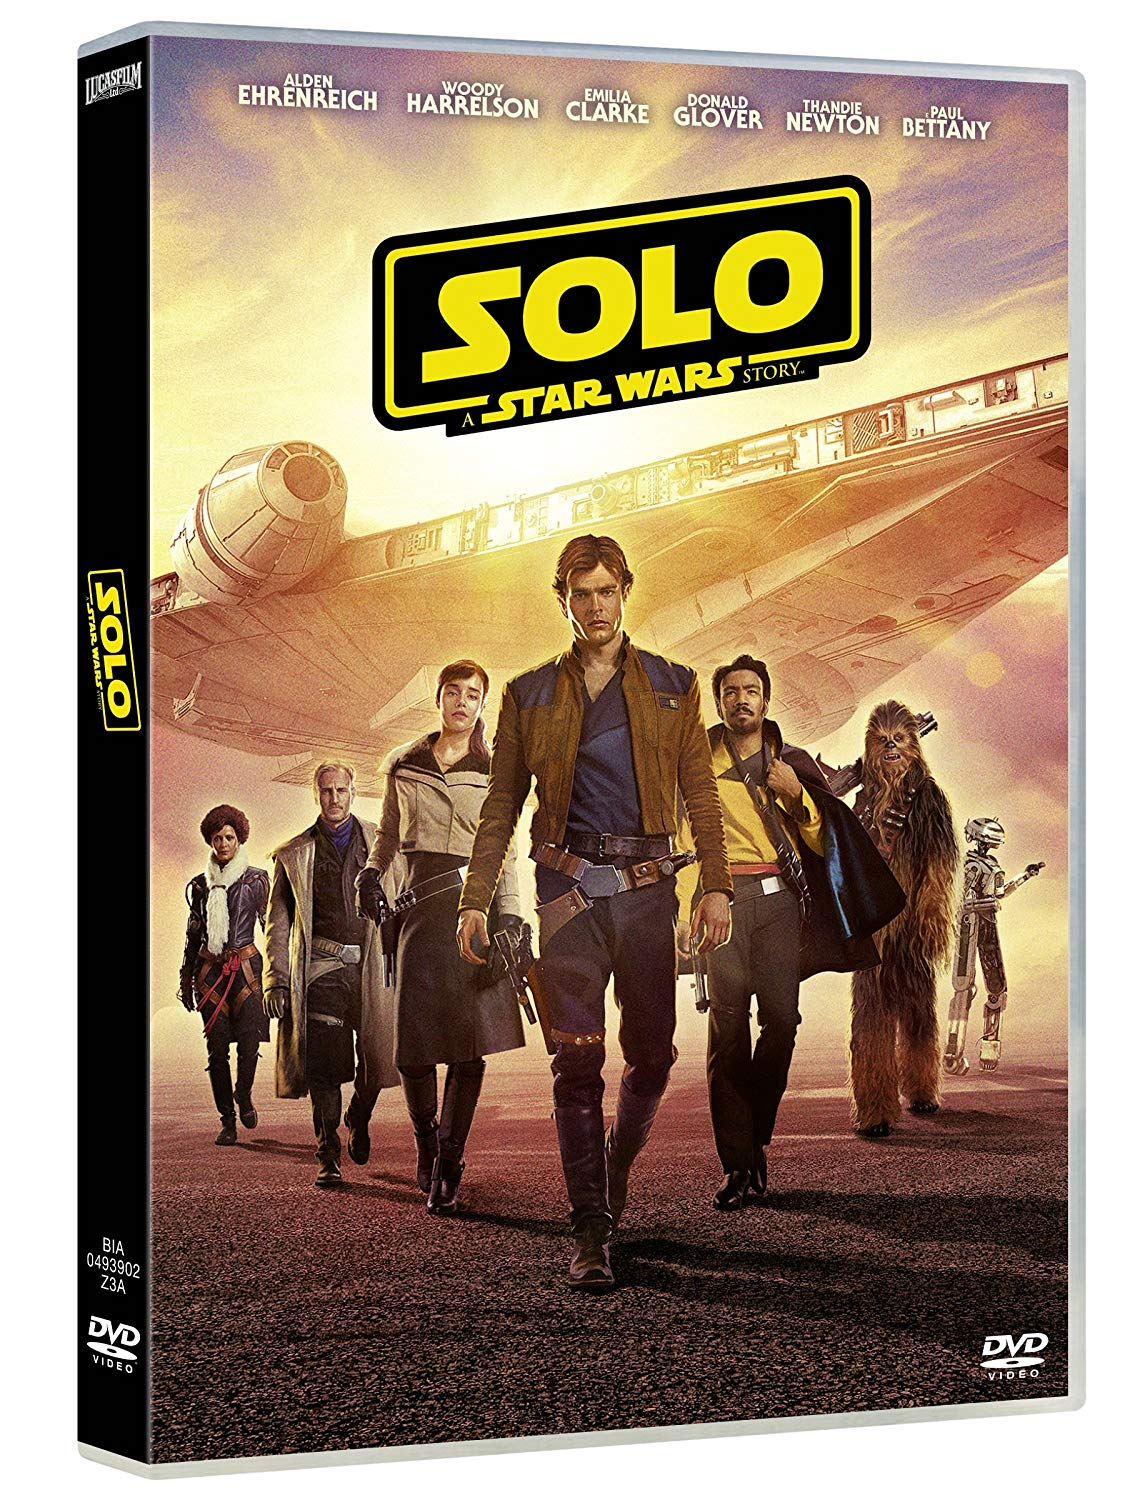 STAR WARS - SOLO: A STAR WARS STORY (DVD)